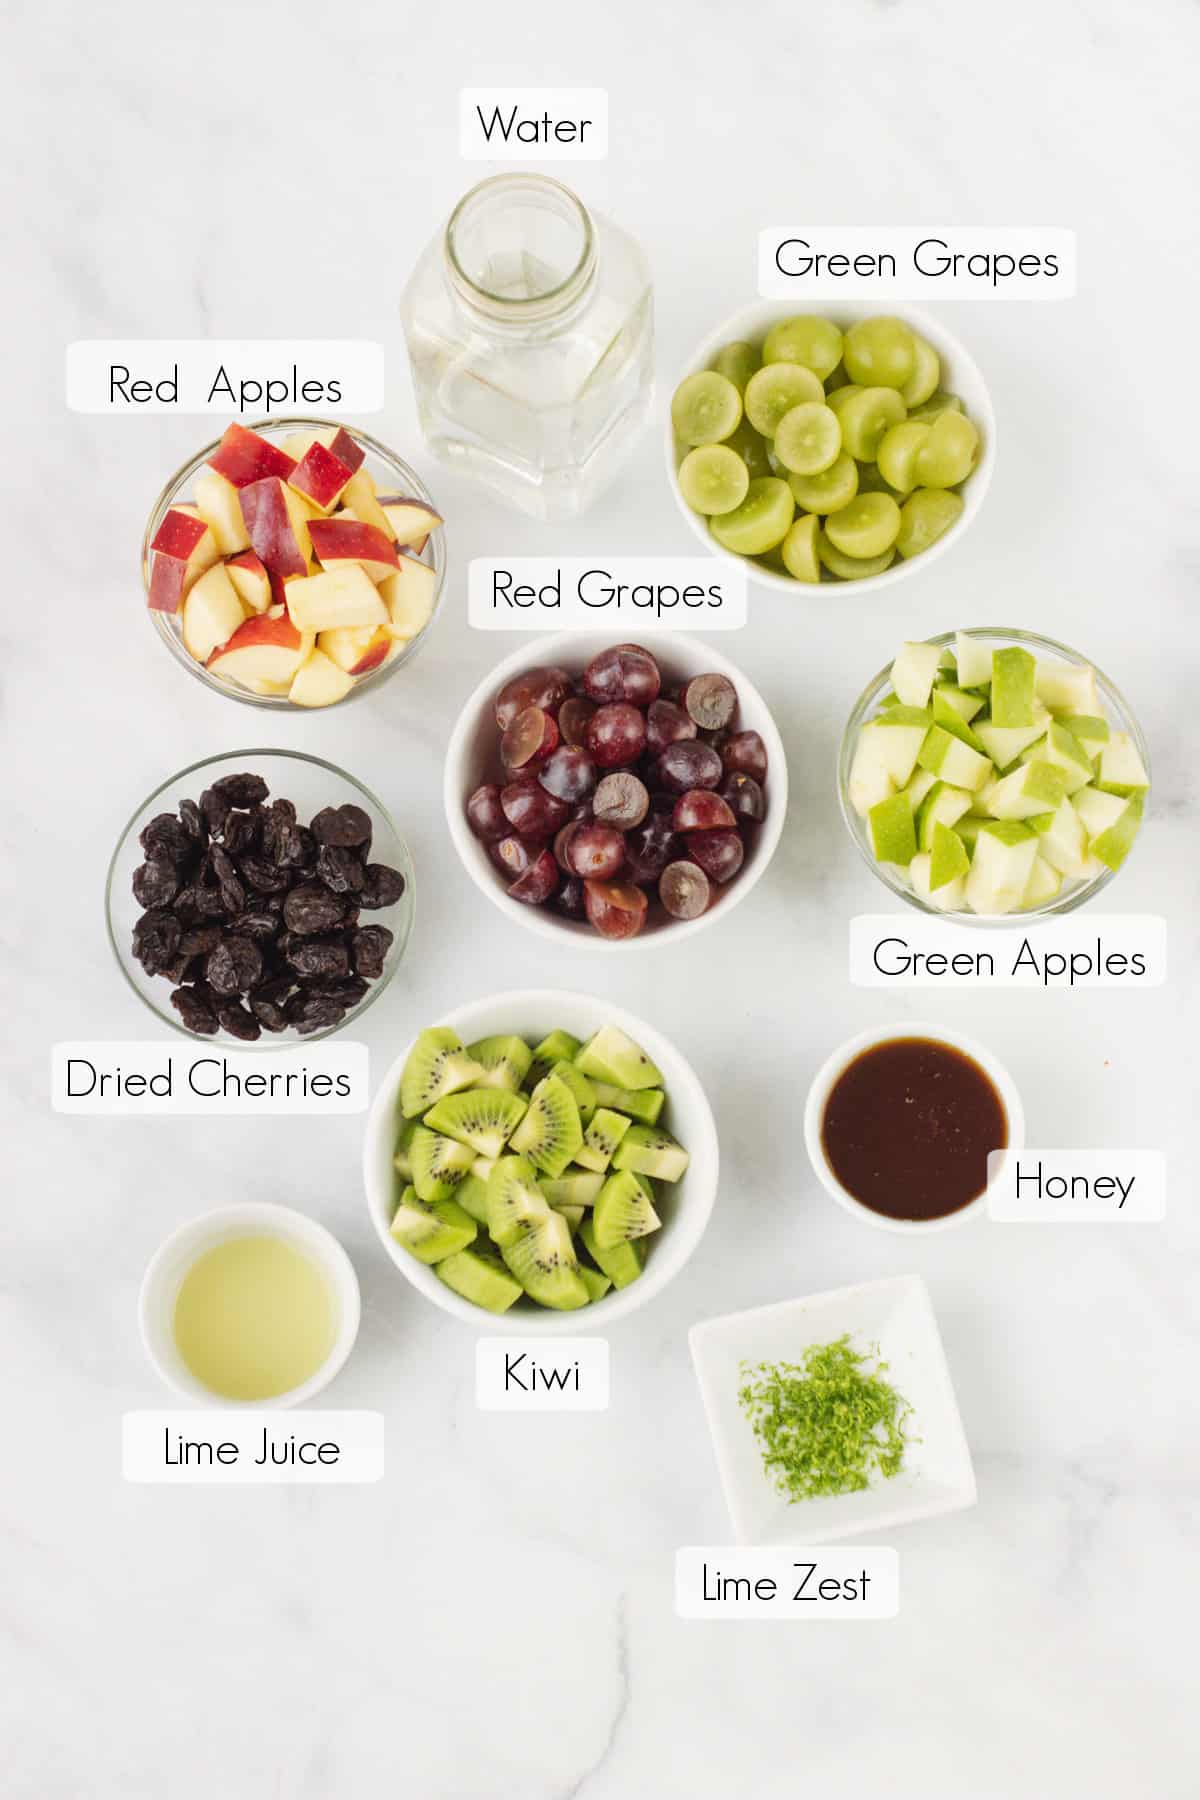 Labeled ingredients for Holiday Fruit Salad in bowls.